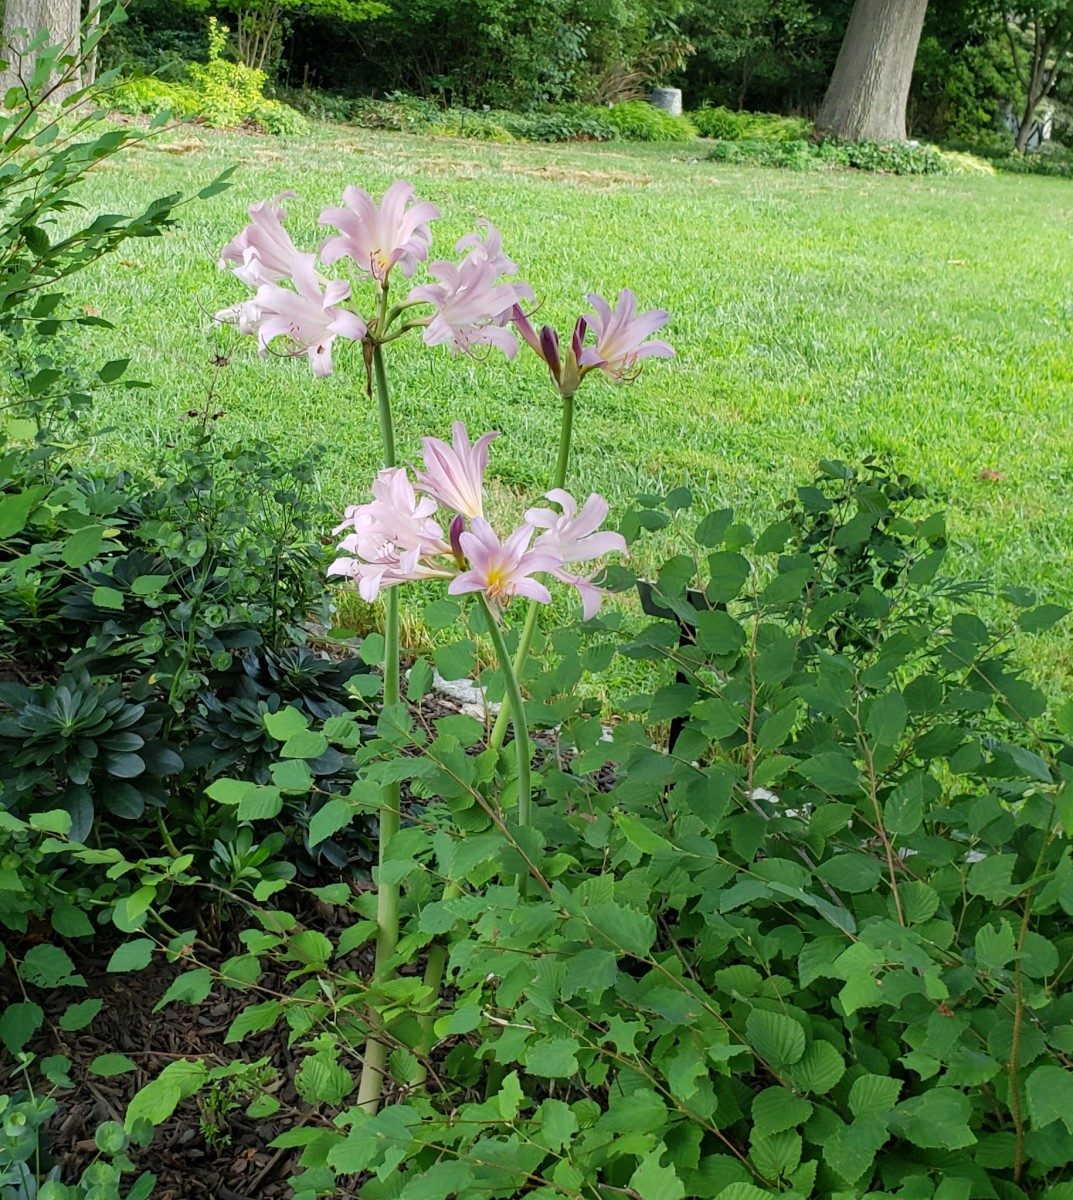 Gardeners like to plant perennials around their resurrection lilies to hide their lack of foliage.